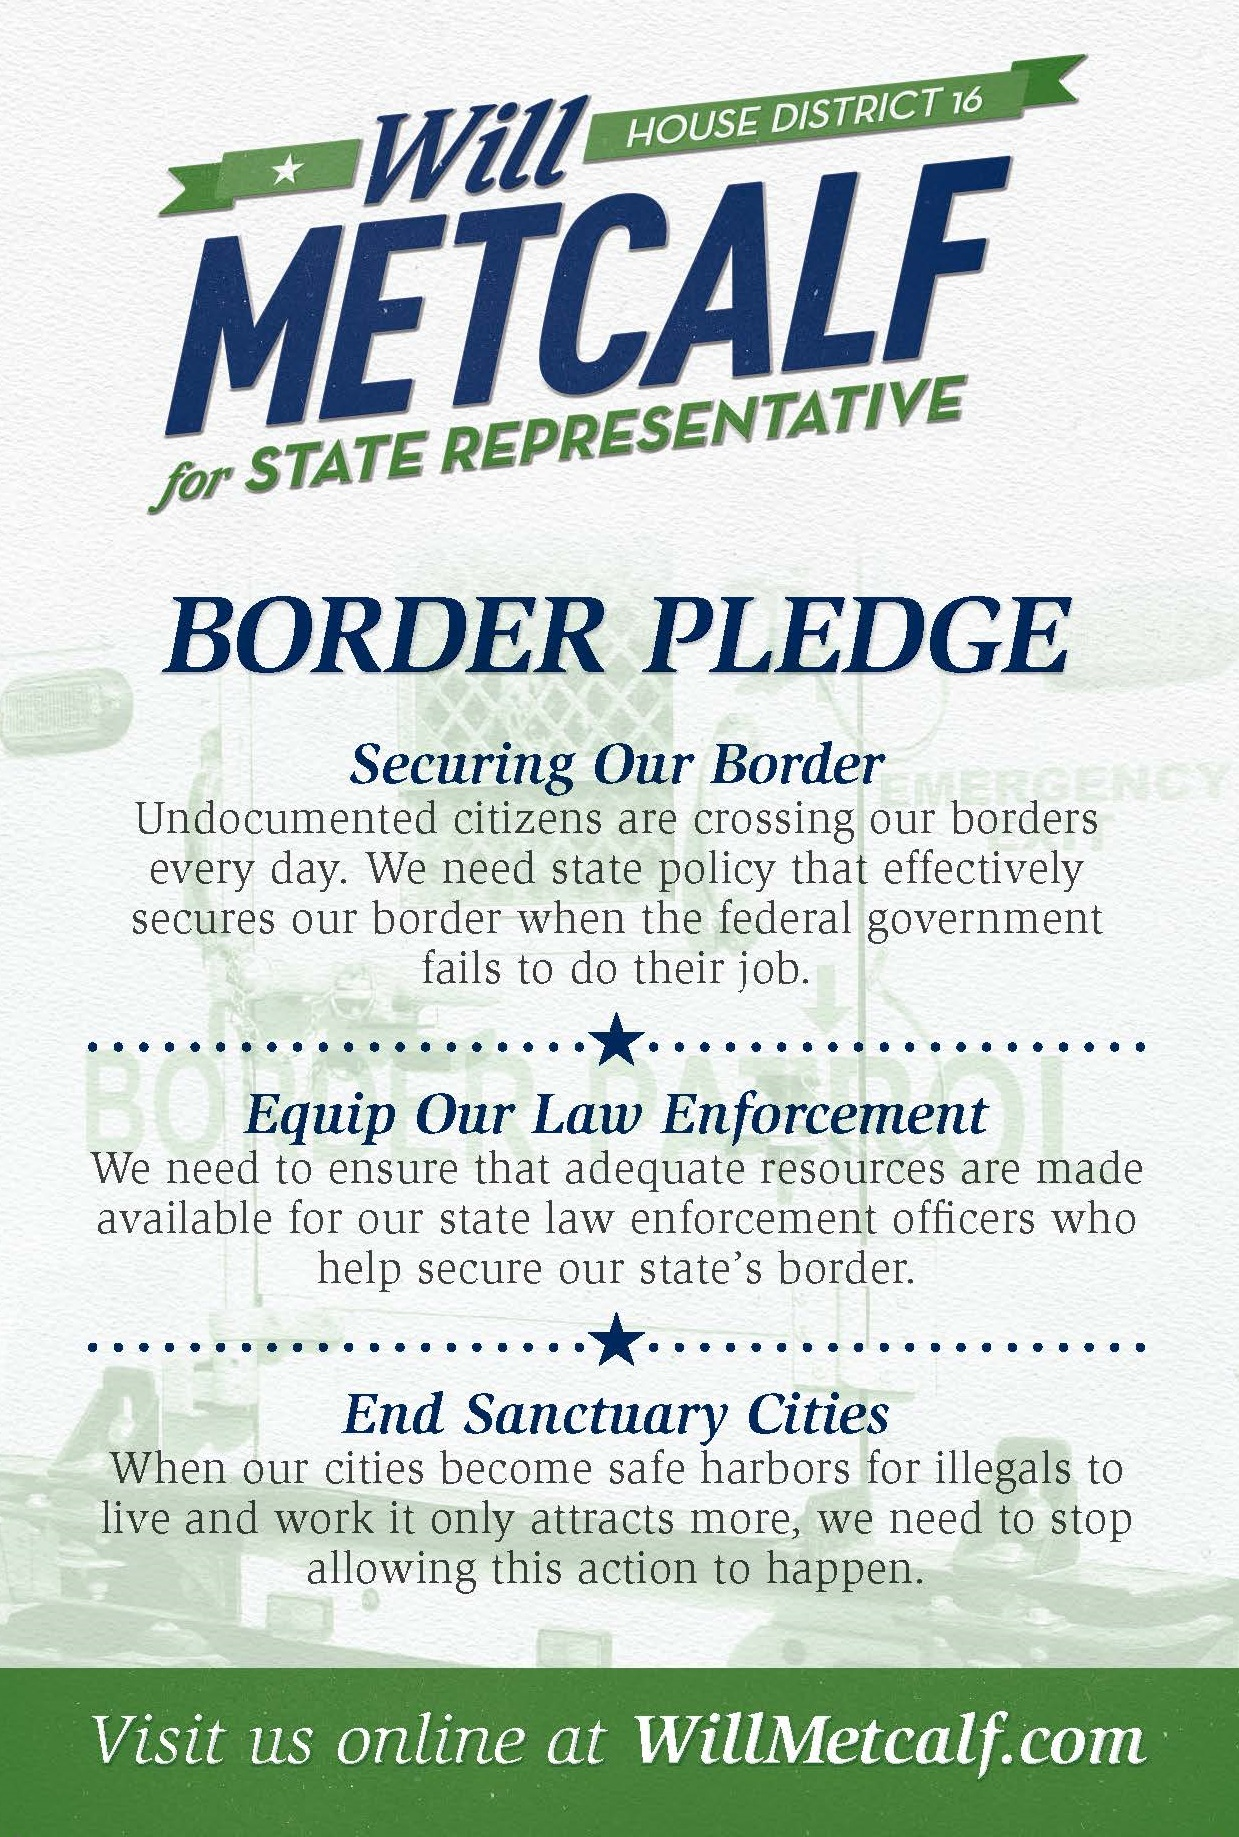 Metcalf_Border_Pledge_Postcard_Page_1.jpg